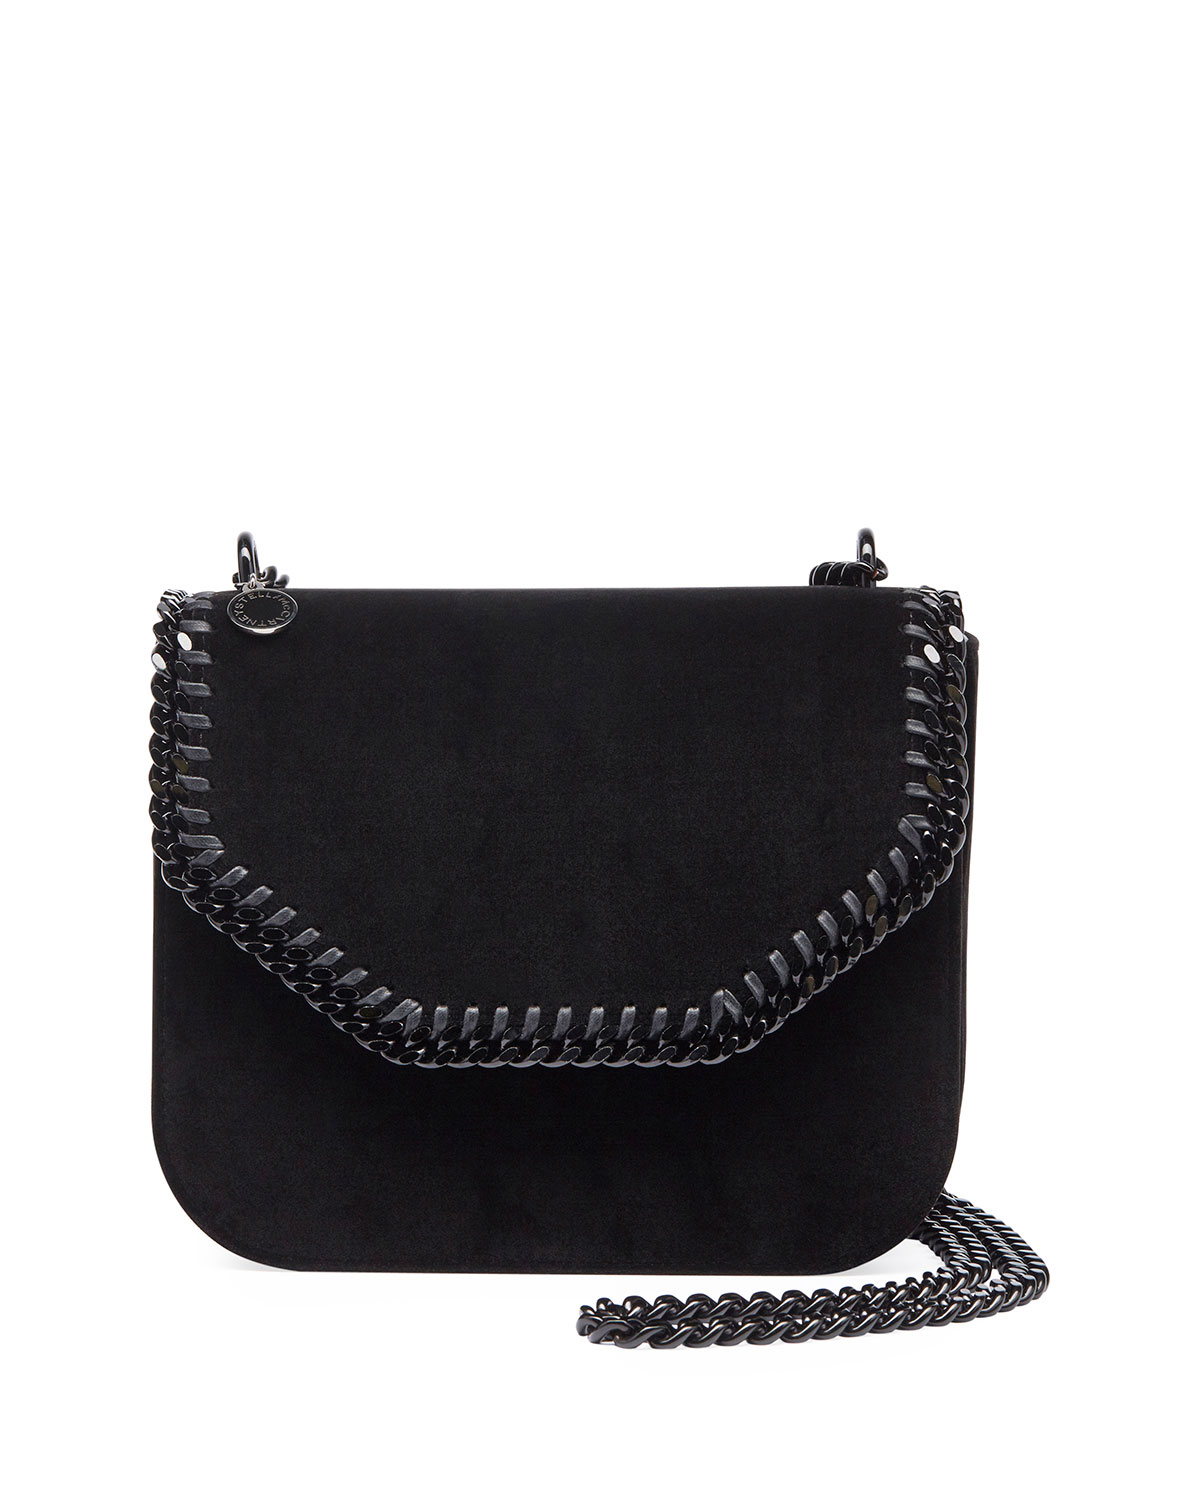 Stella McCartney Falabella Velvet Box Crossbody Bag 061e664999876